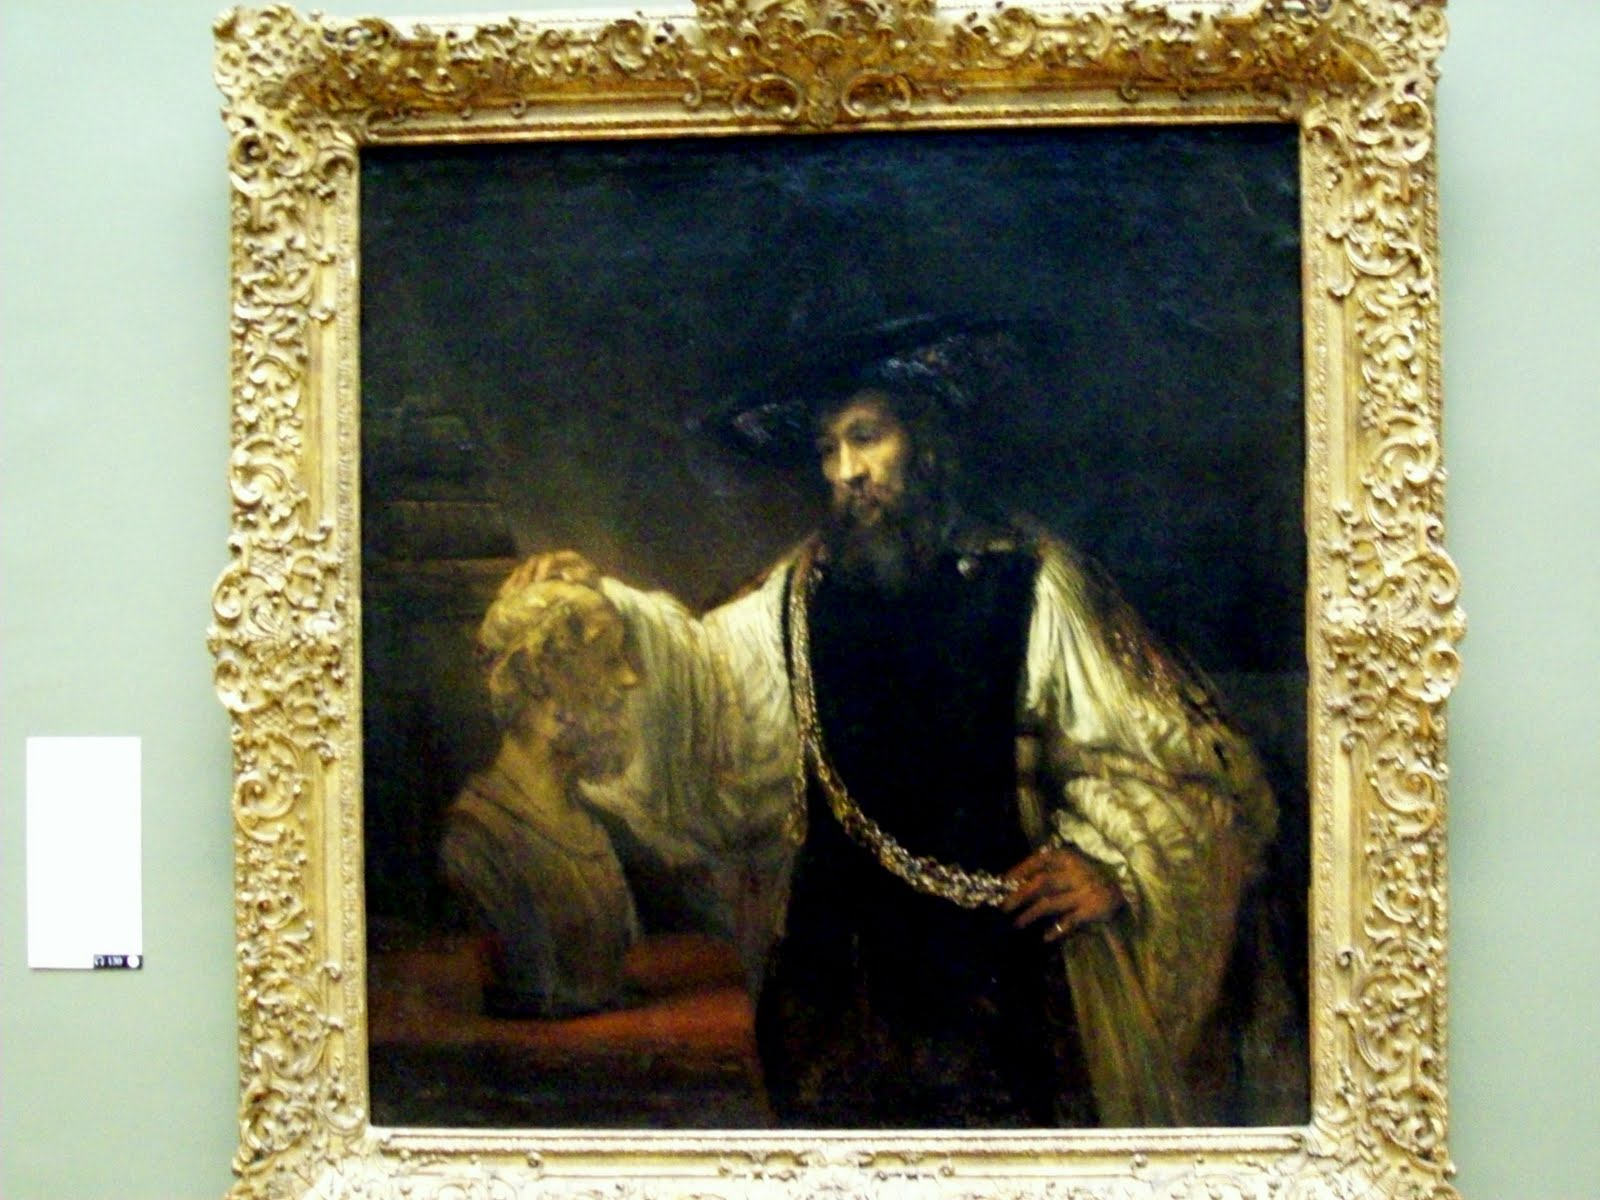 38 Best Aristotle Images On Pinterest: The Museum Experience Mod 4, 2011: The Paintings At The Met